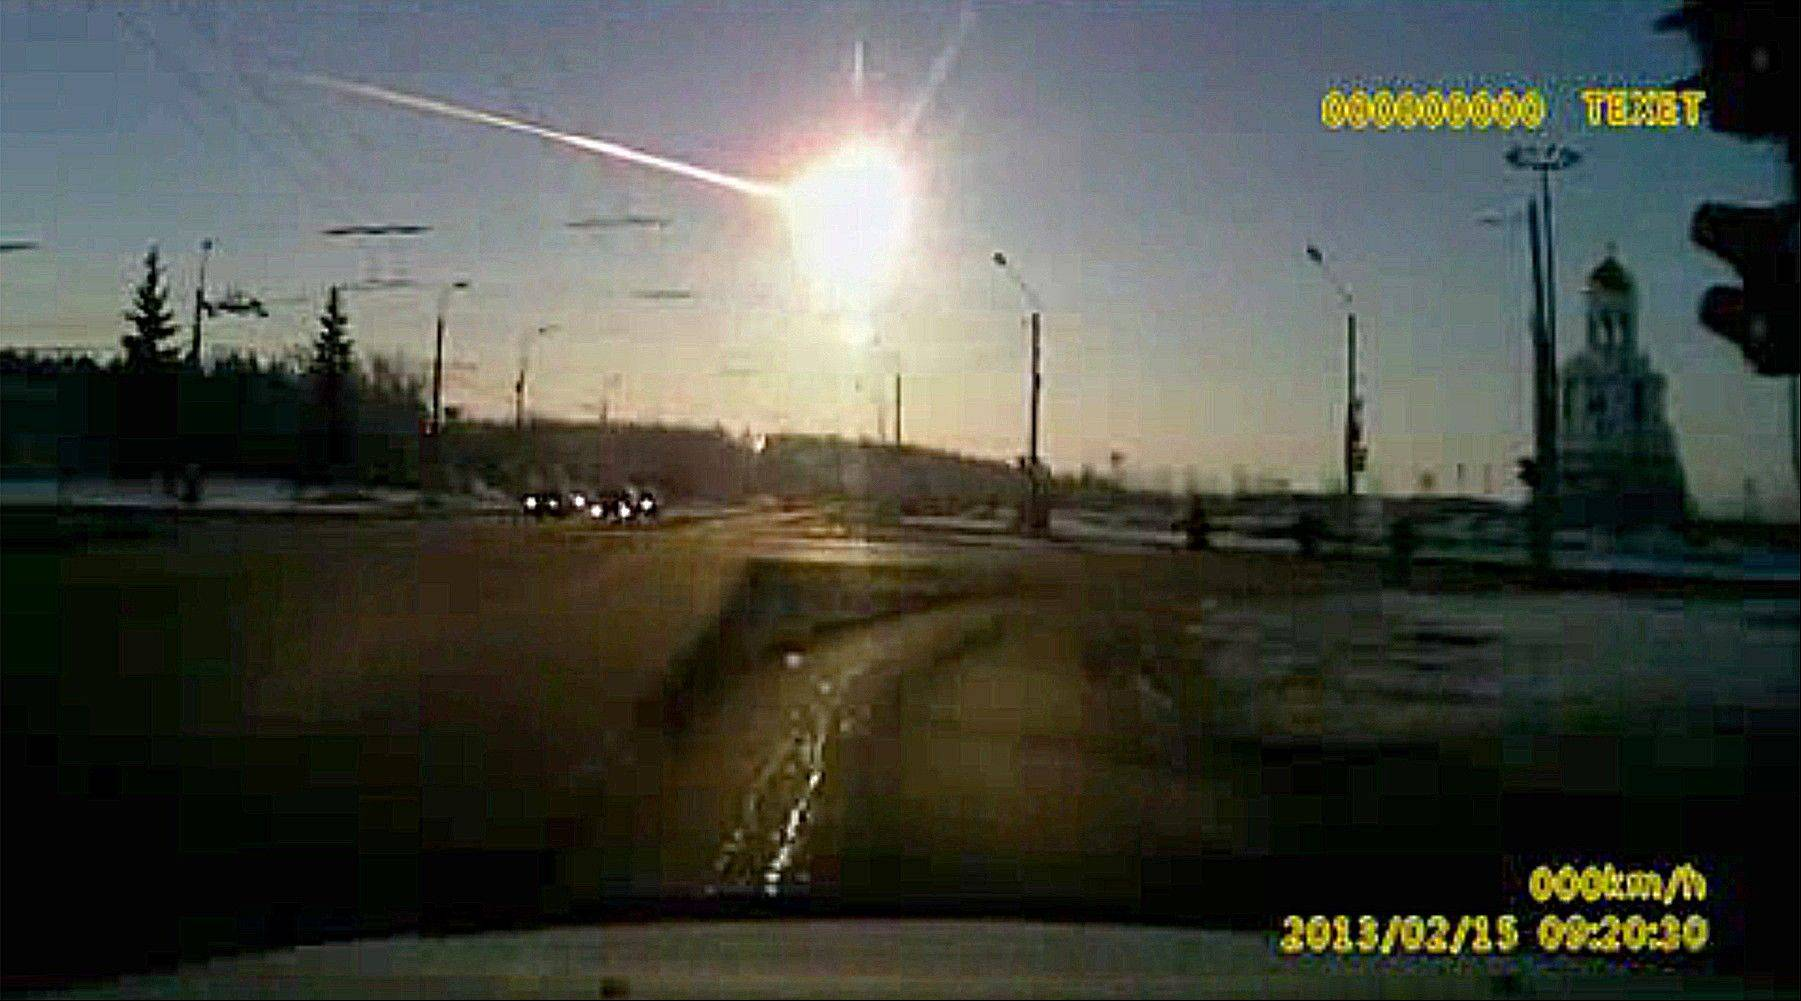 In photo from a dashboard camera video shows a meteor streaking through the sky over Chelyabinsk, about 930 miles east of Moscow, Friday, Feb. 15, 2013.